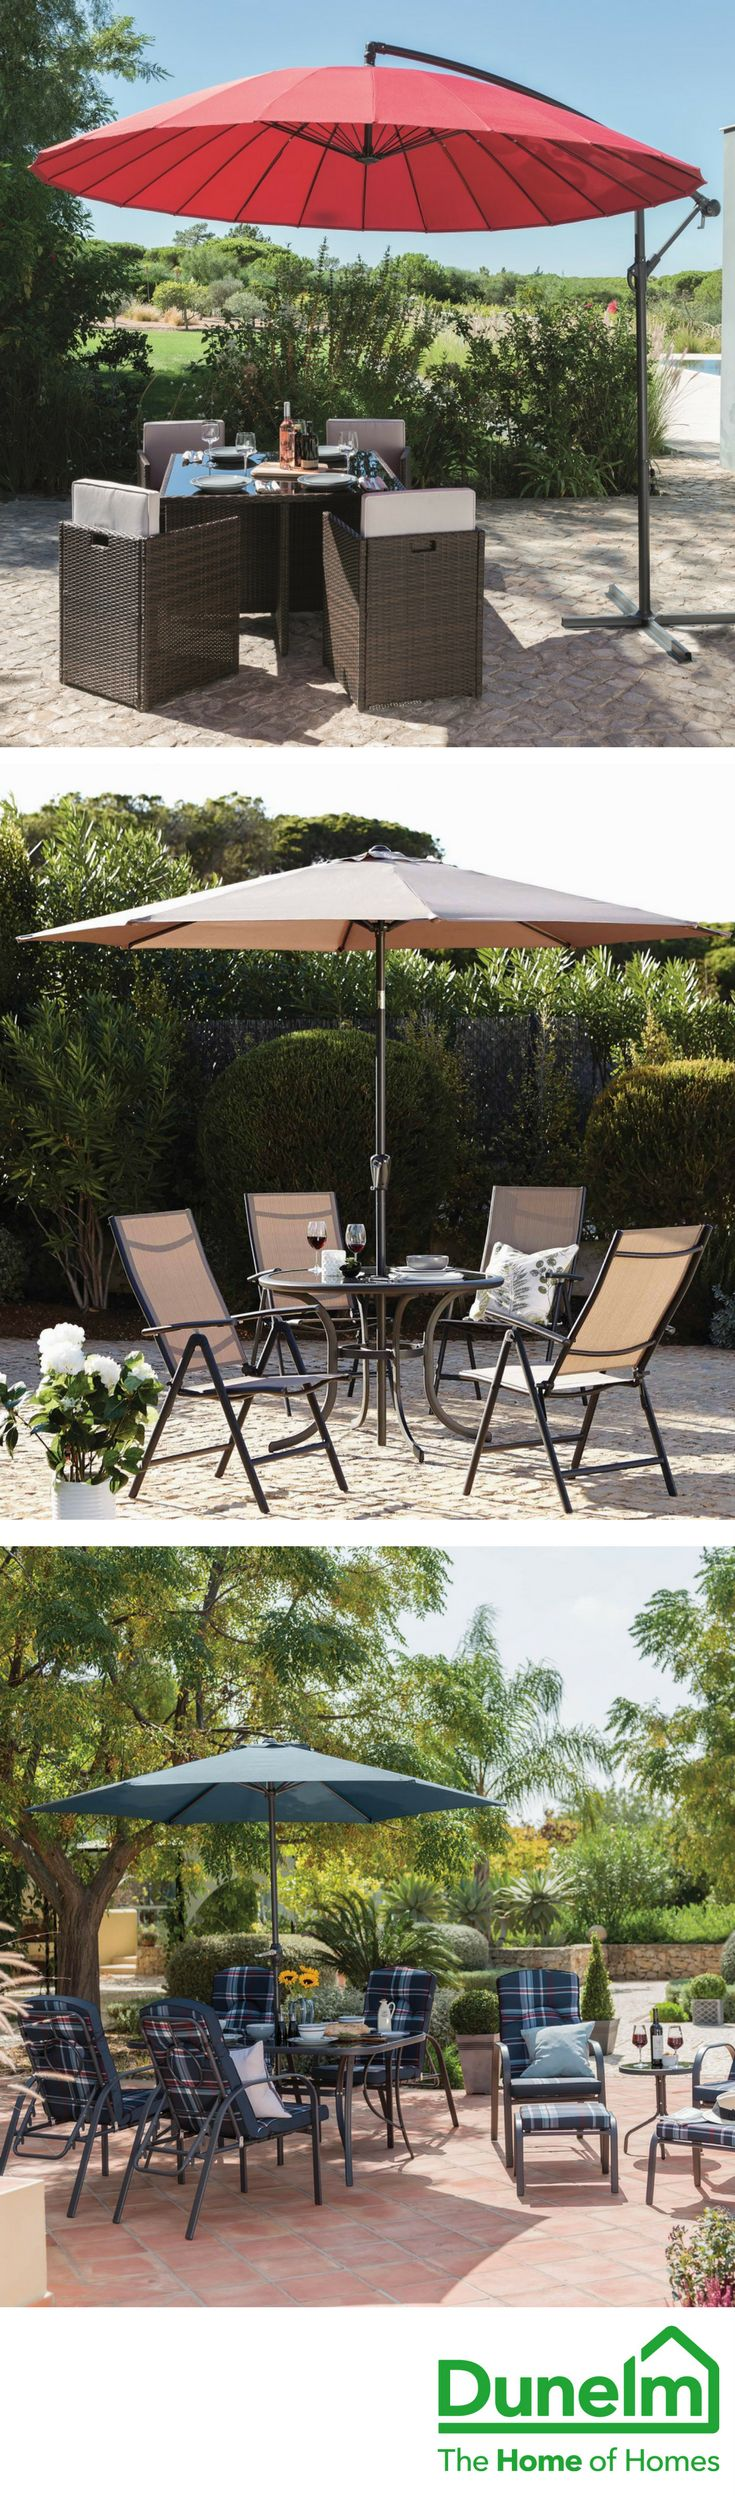 LIFE'S BETTER OUTDOORS | Maximise the fun this summer with our wide range of garden furniture and accessories. From two piece bistro sets and urban outdoor lighting, to 11 piece dining sets and chimineas, you can make the most of your outdoor space, whatever its size!